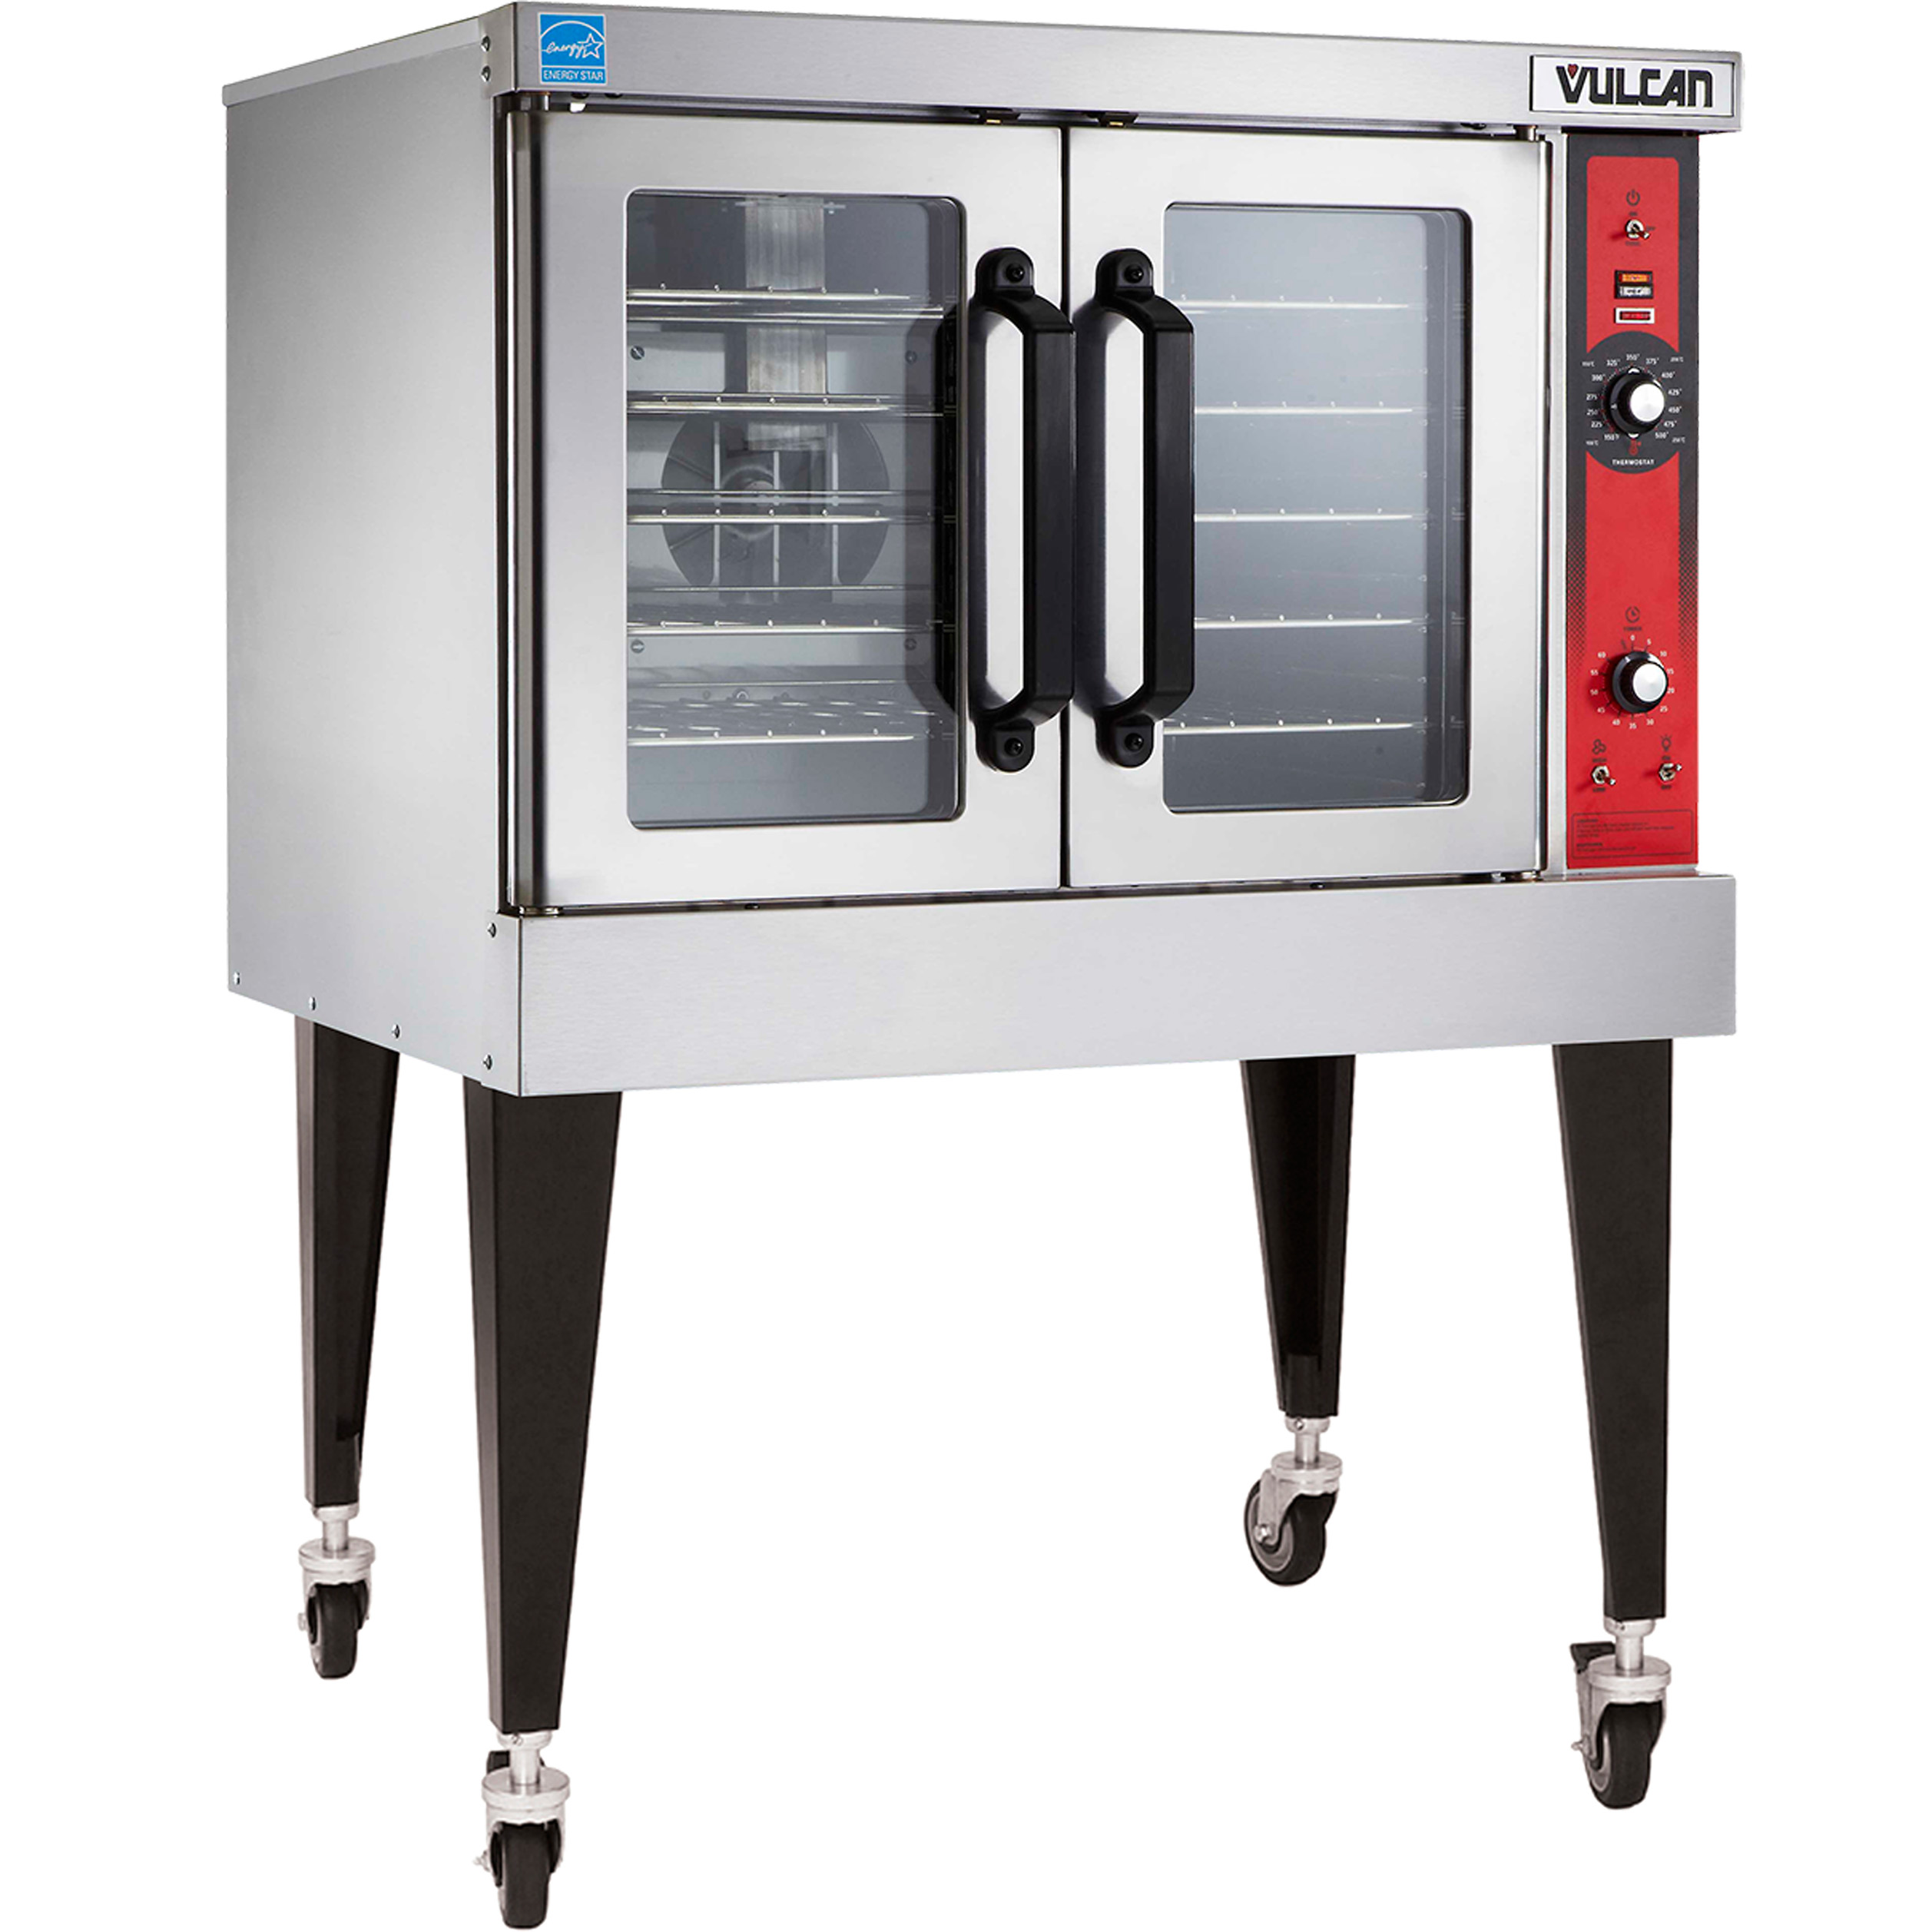 Vulcan VC5GD convection oven, gas